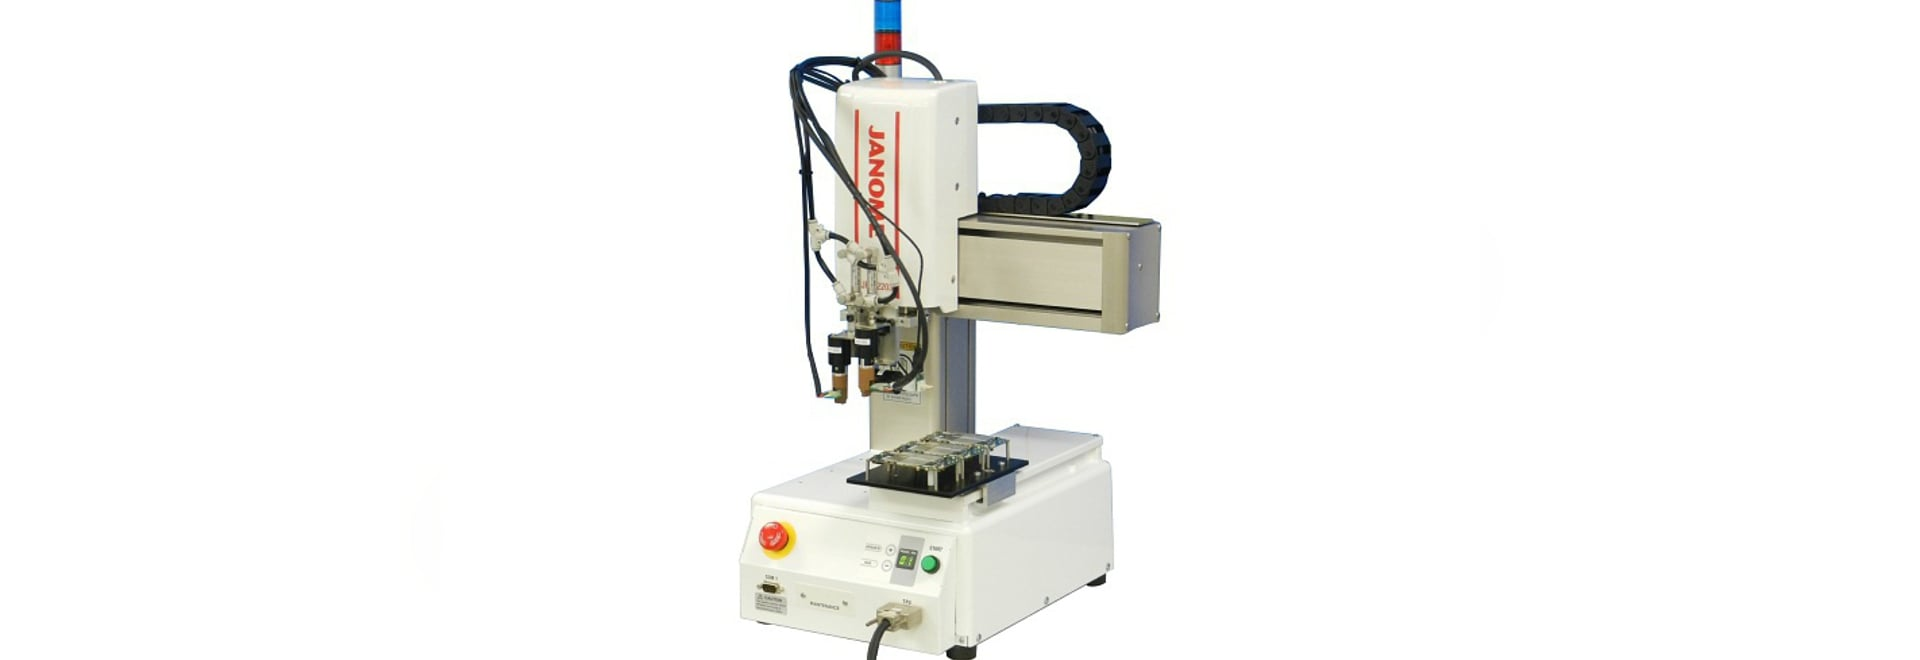 Janome Robot Proves Useful as a PC Board Continuity Testing Device